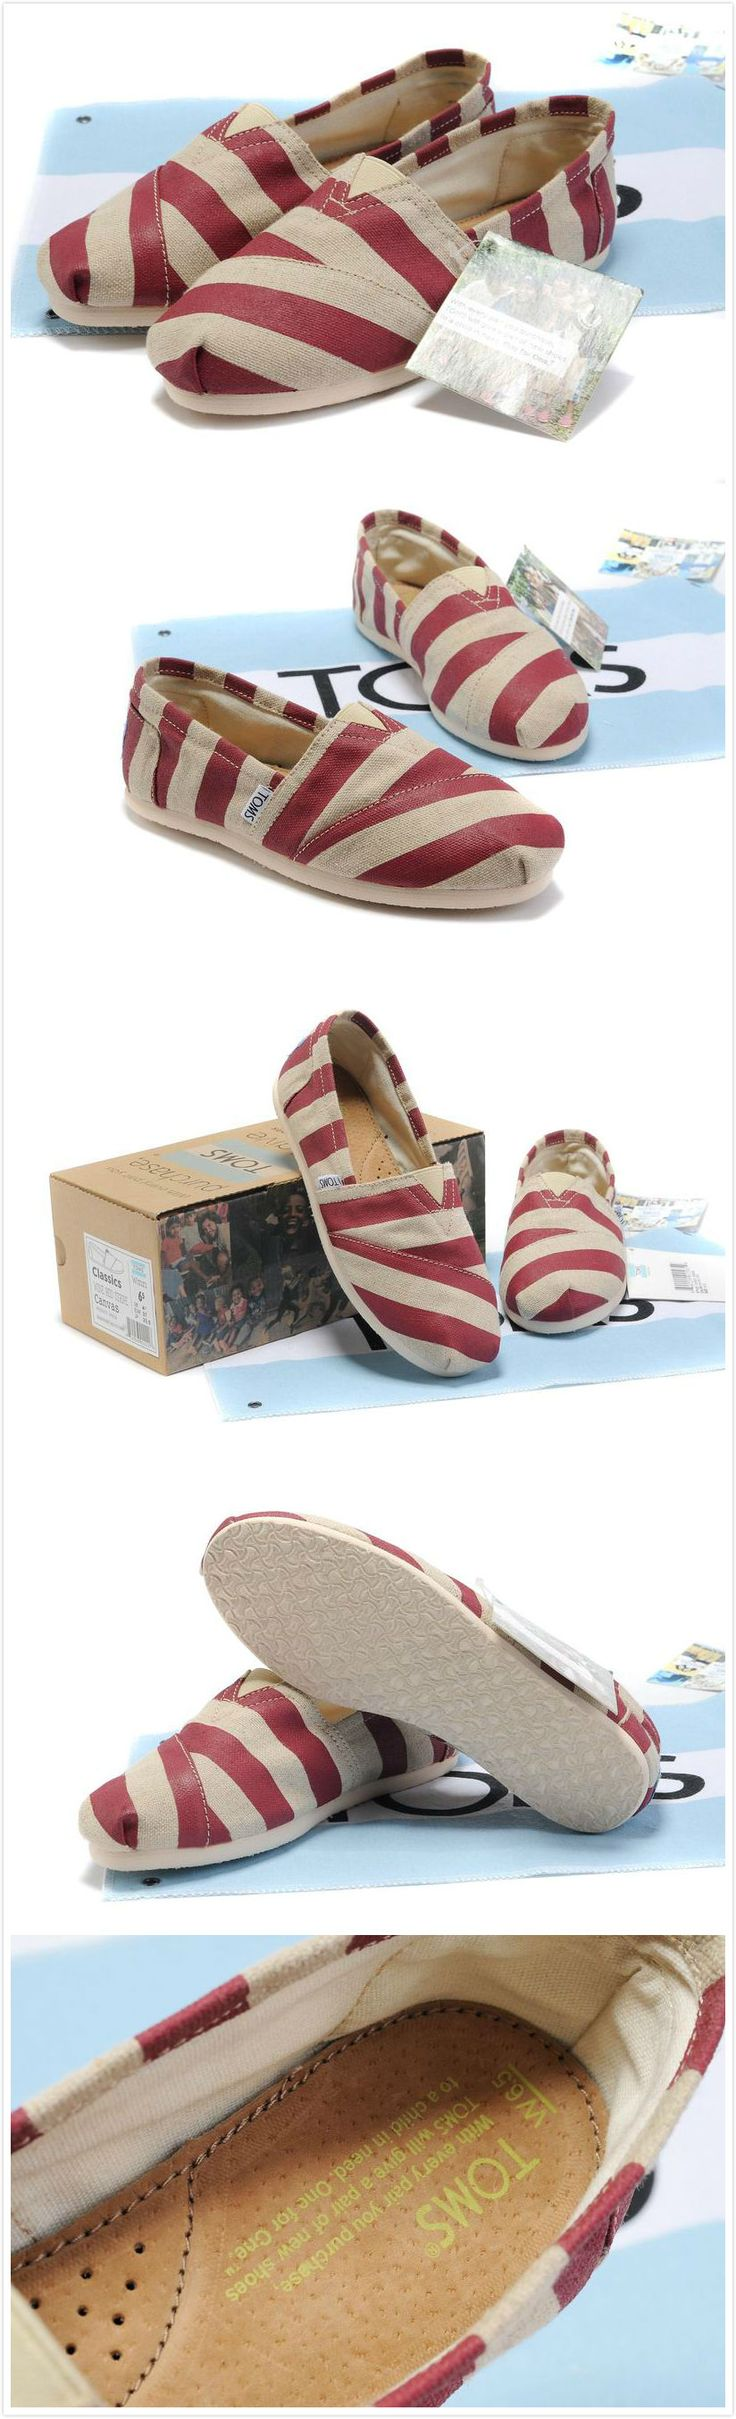 Toms Outlet! $16.89 Holy cow, I'm gonna love this site